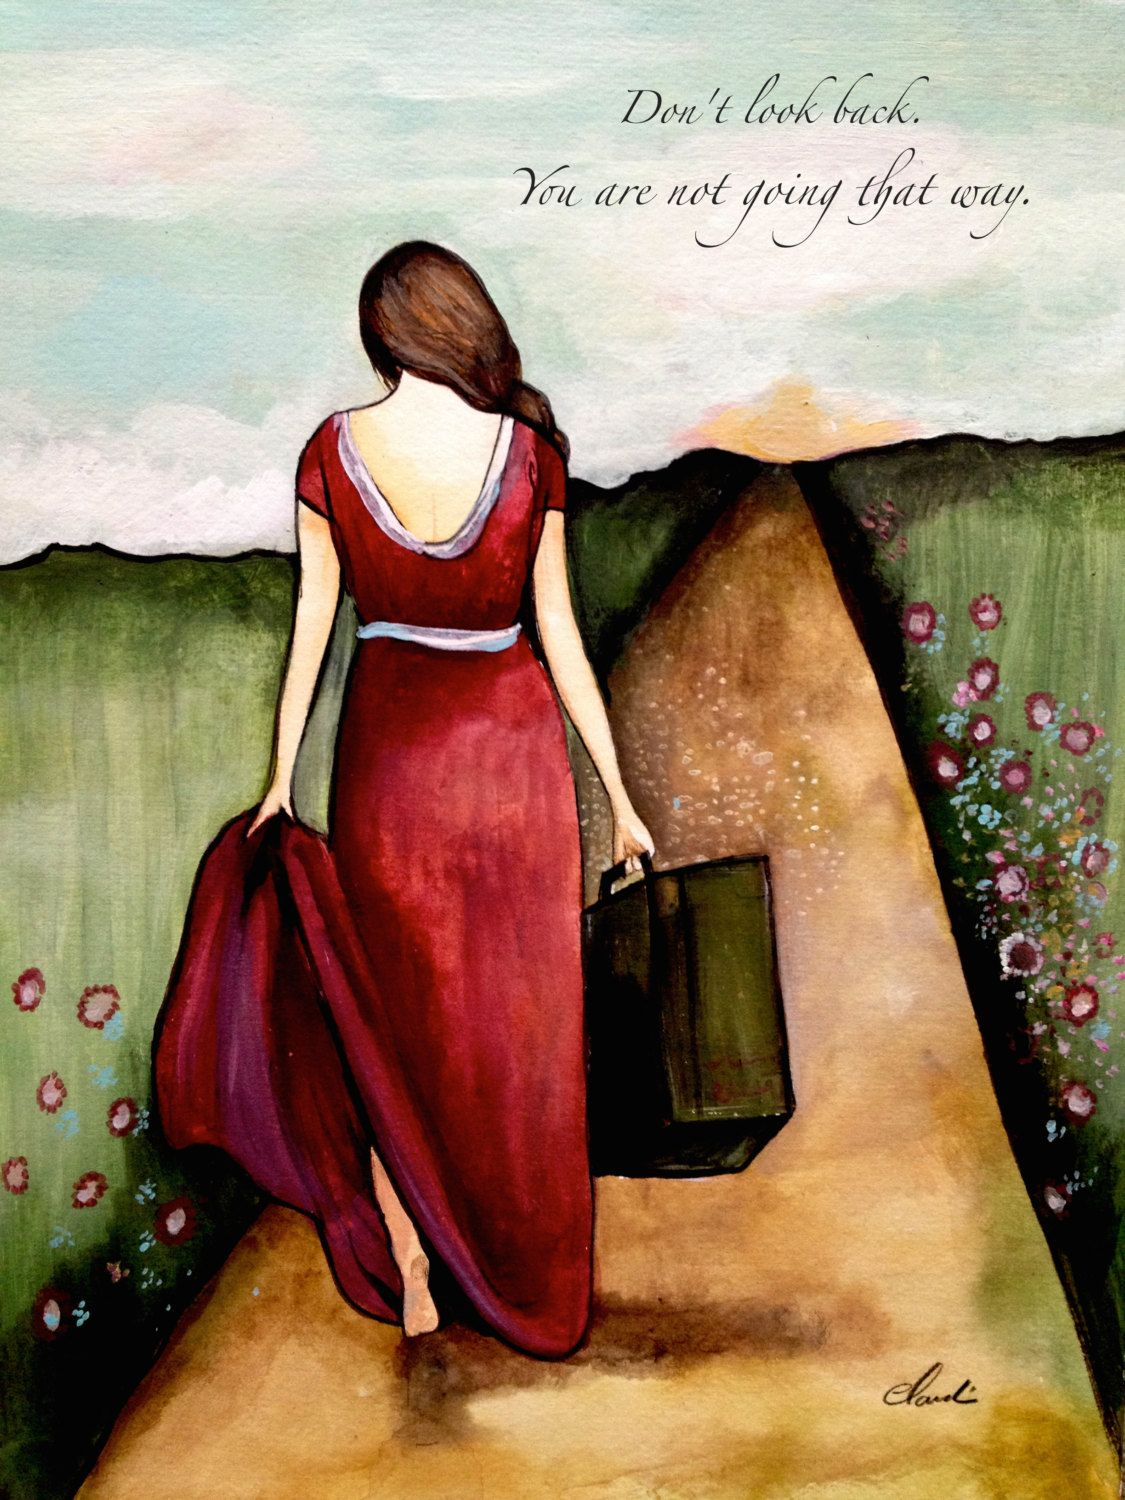 Don't look back, you are not going that way. art print by claudiatremblay on Etsy